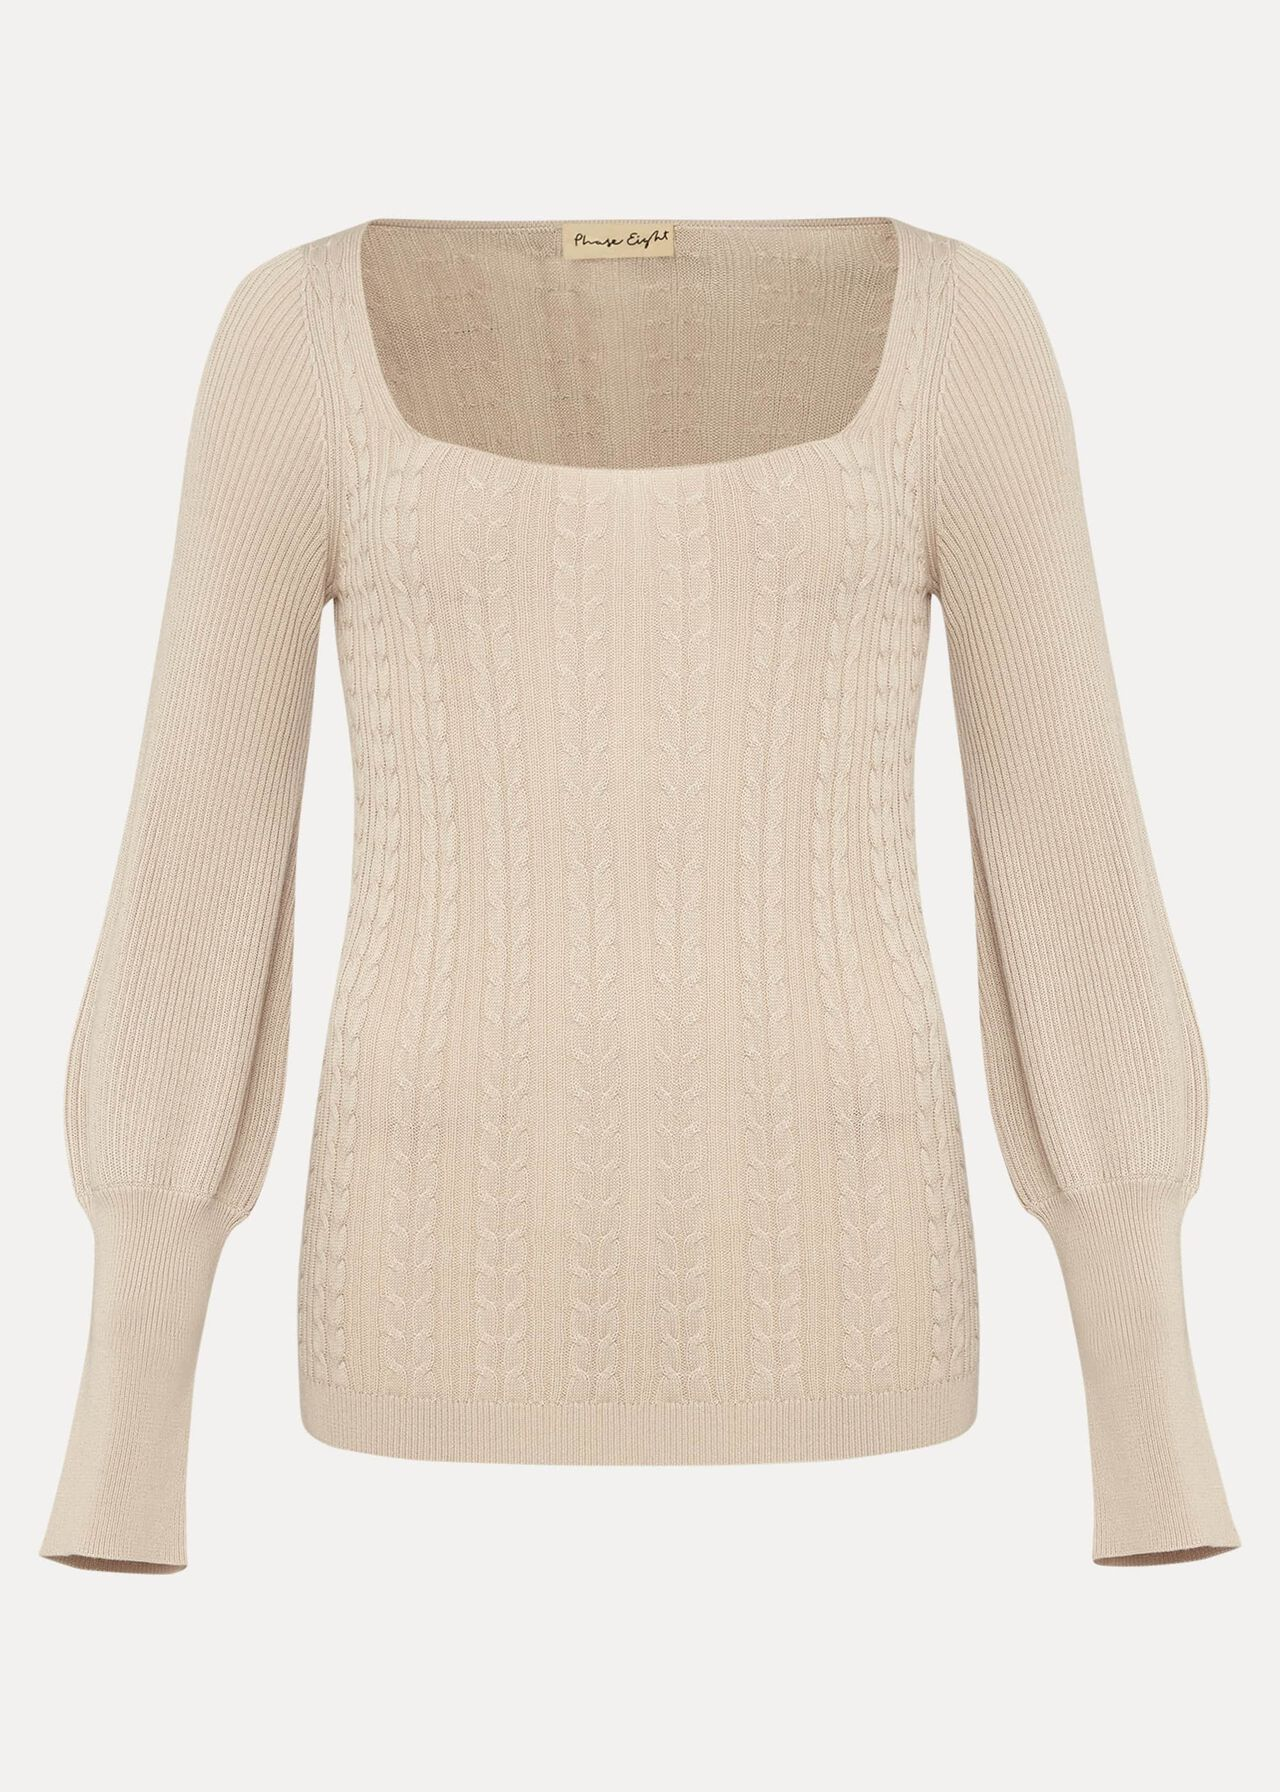 Lucca Square Neck Cable Knit Jumper